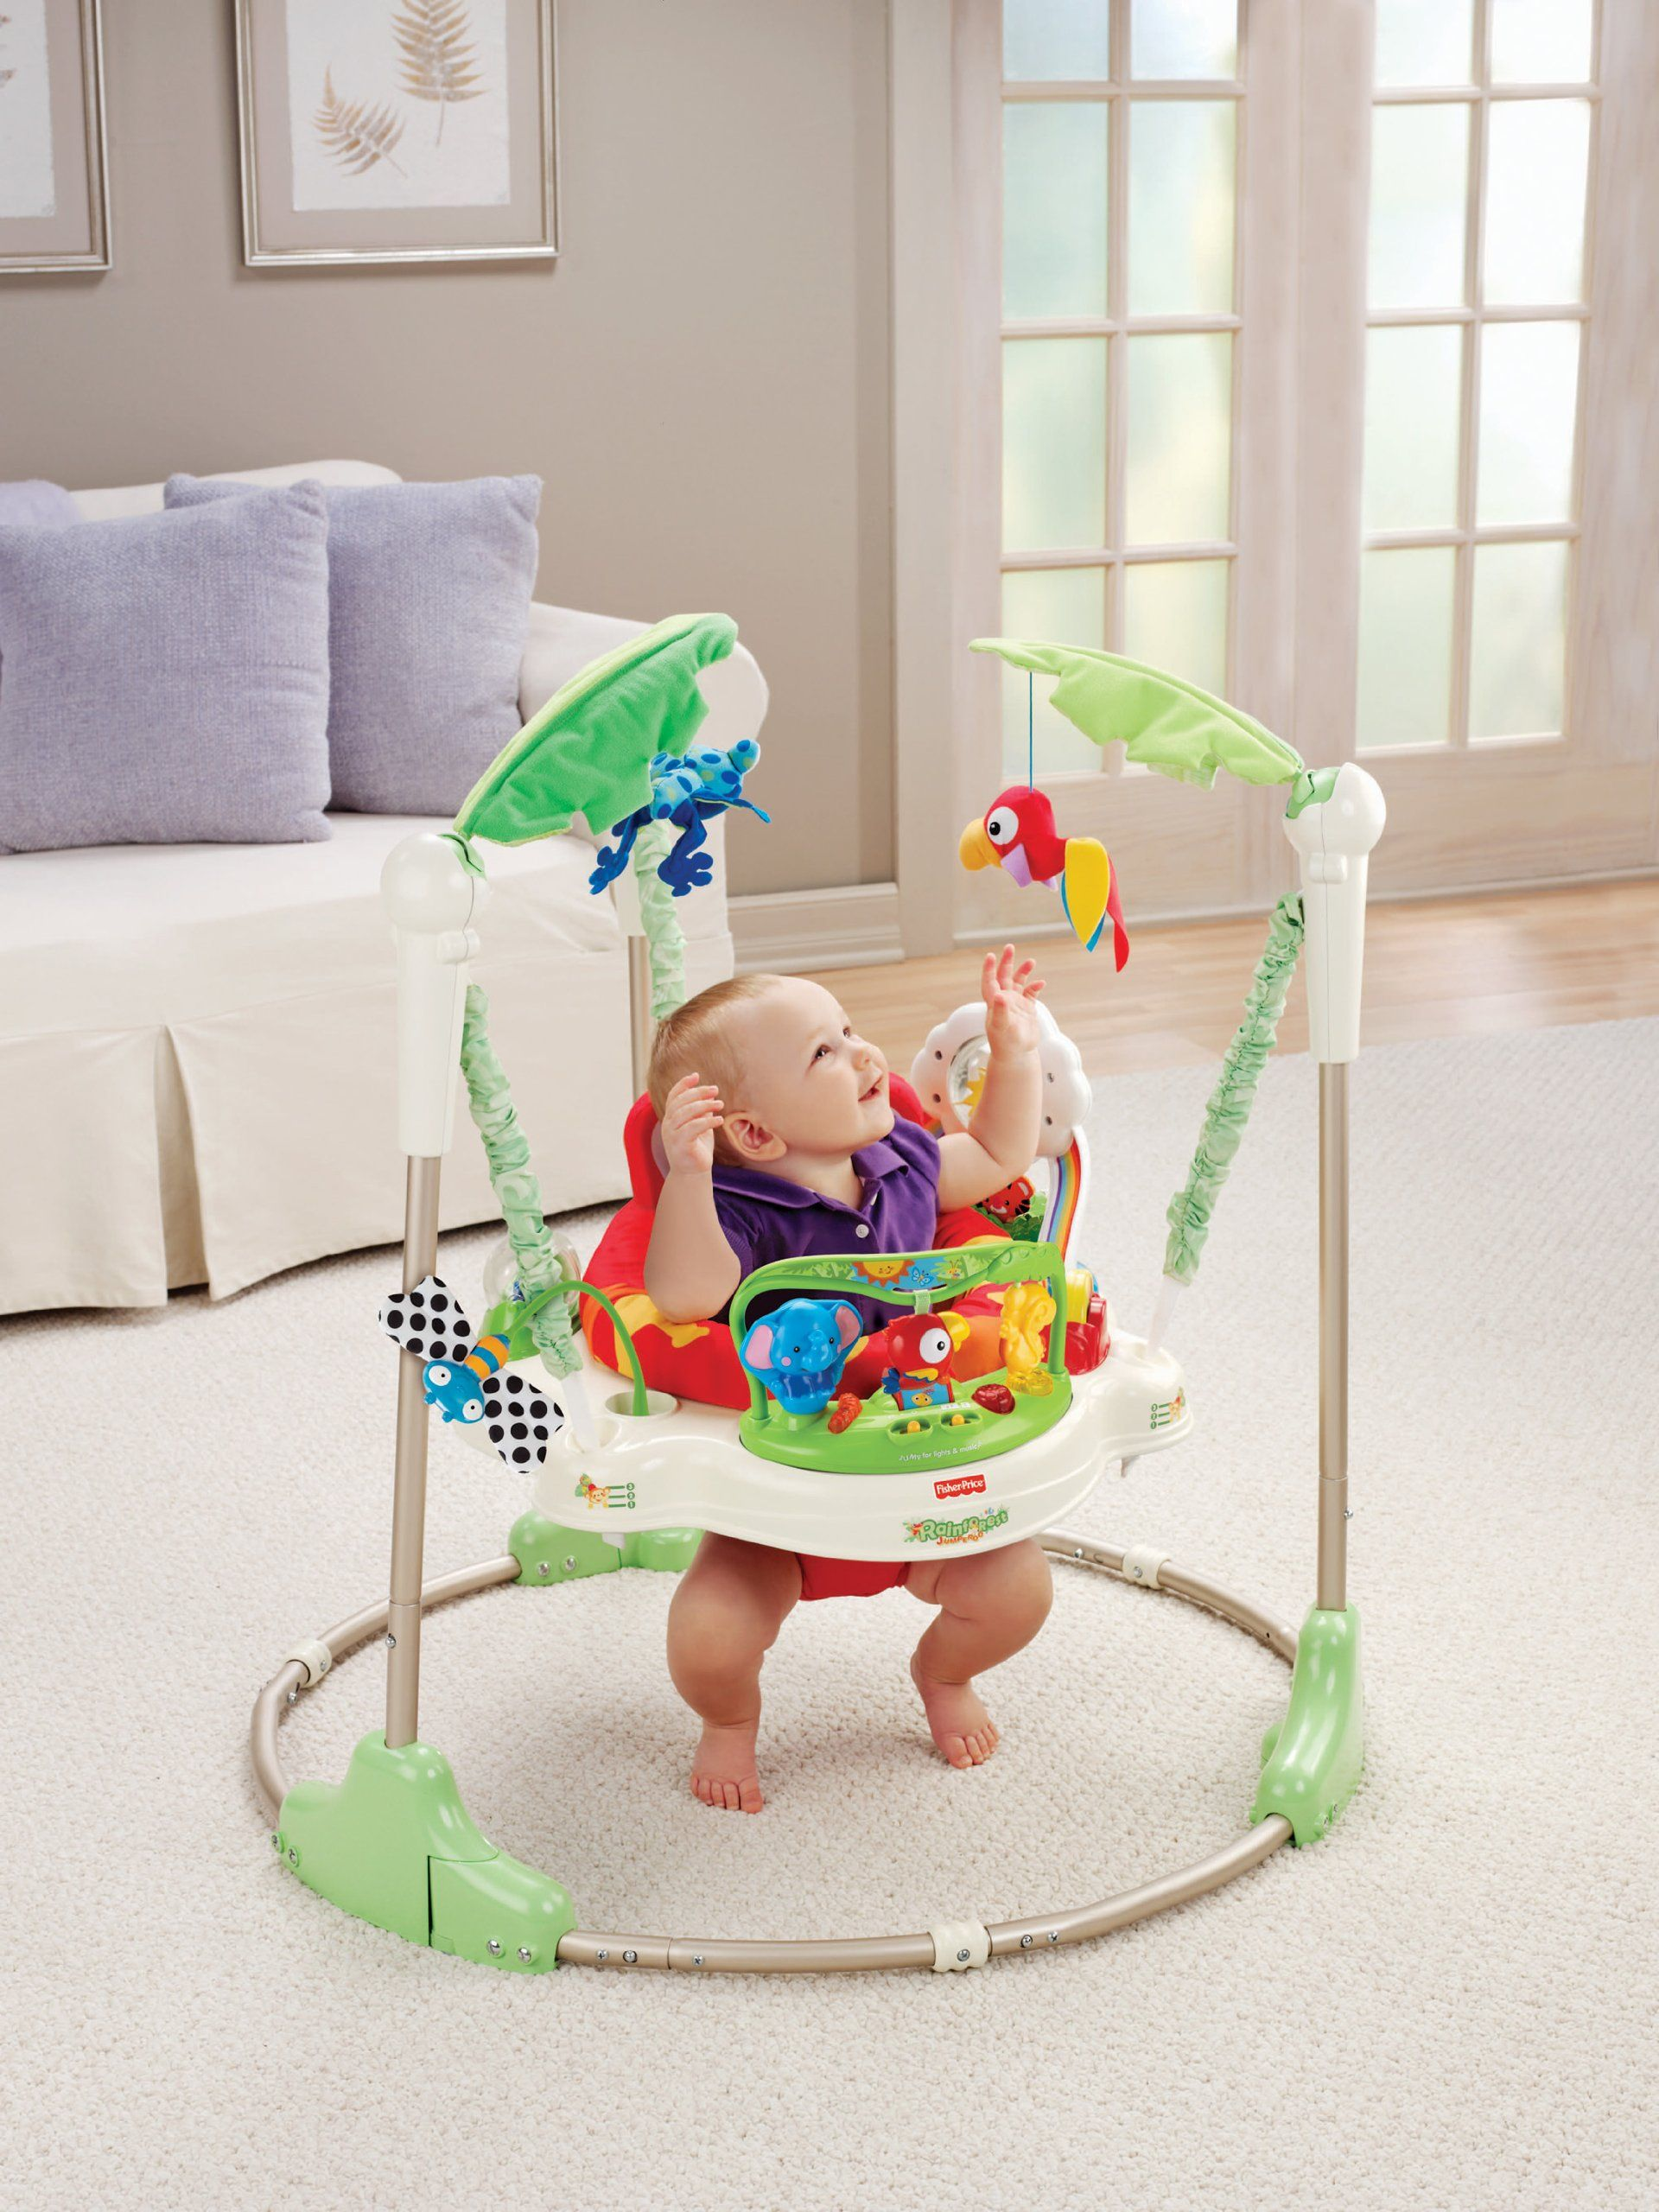 87dff3be58c Amazon.com : Fisher-Price Rainforest Jumperoo : Infant Bouncers And ...